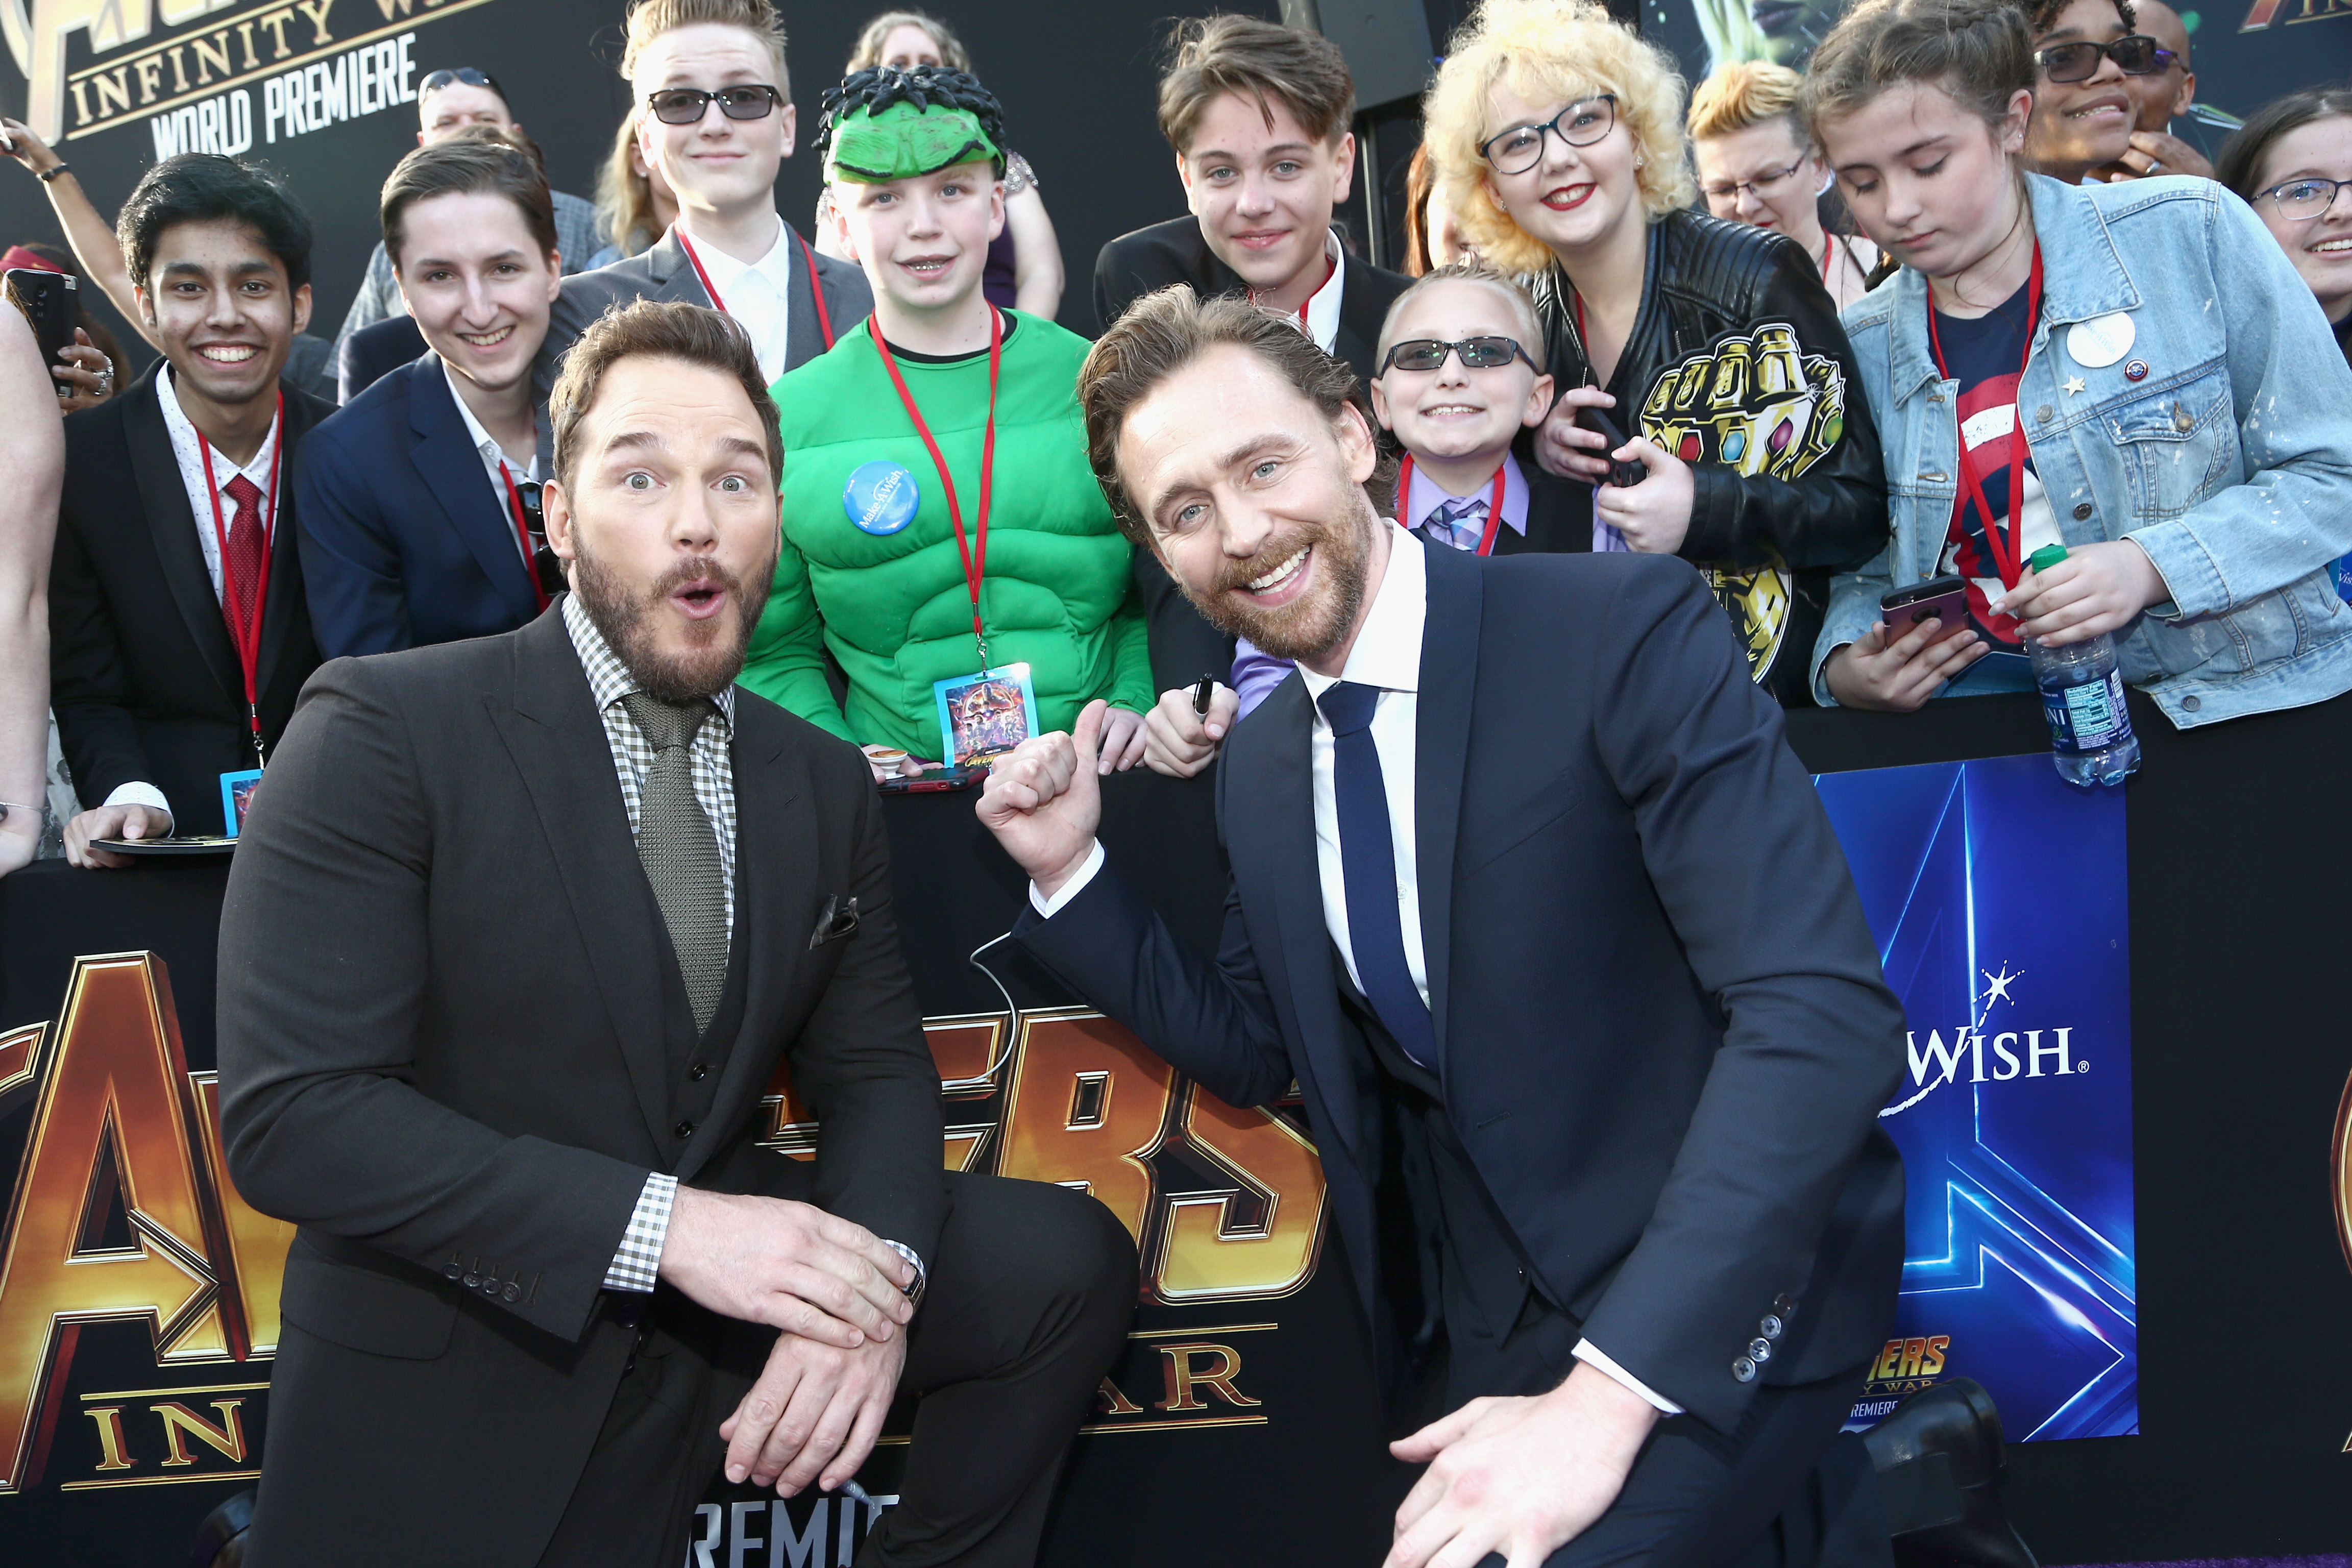 HOLLYWOOD, CA - APRIL 23:  Actors Chris Pratt (L) and Tom Hiddleston attend the Los Angeles Global Premiere for Marvel Studios' Avengers: Infinity War on April 23, 2018 in Hollywood, California.  (Photo by Tommaso Boddi/Getty Images for Disney) *** Local Caption *** Chris Pratt; Tom Hiddleston